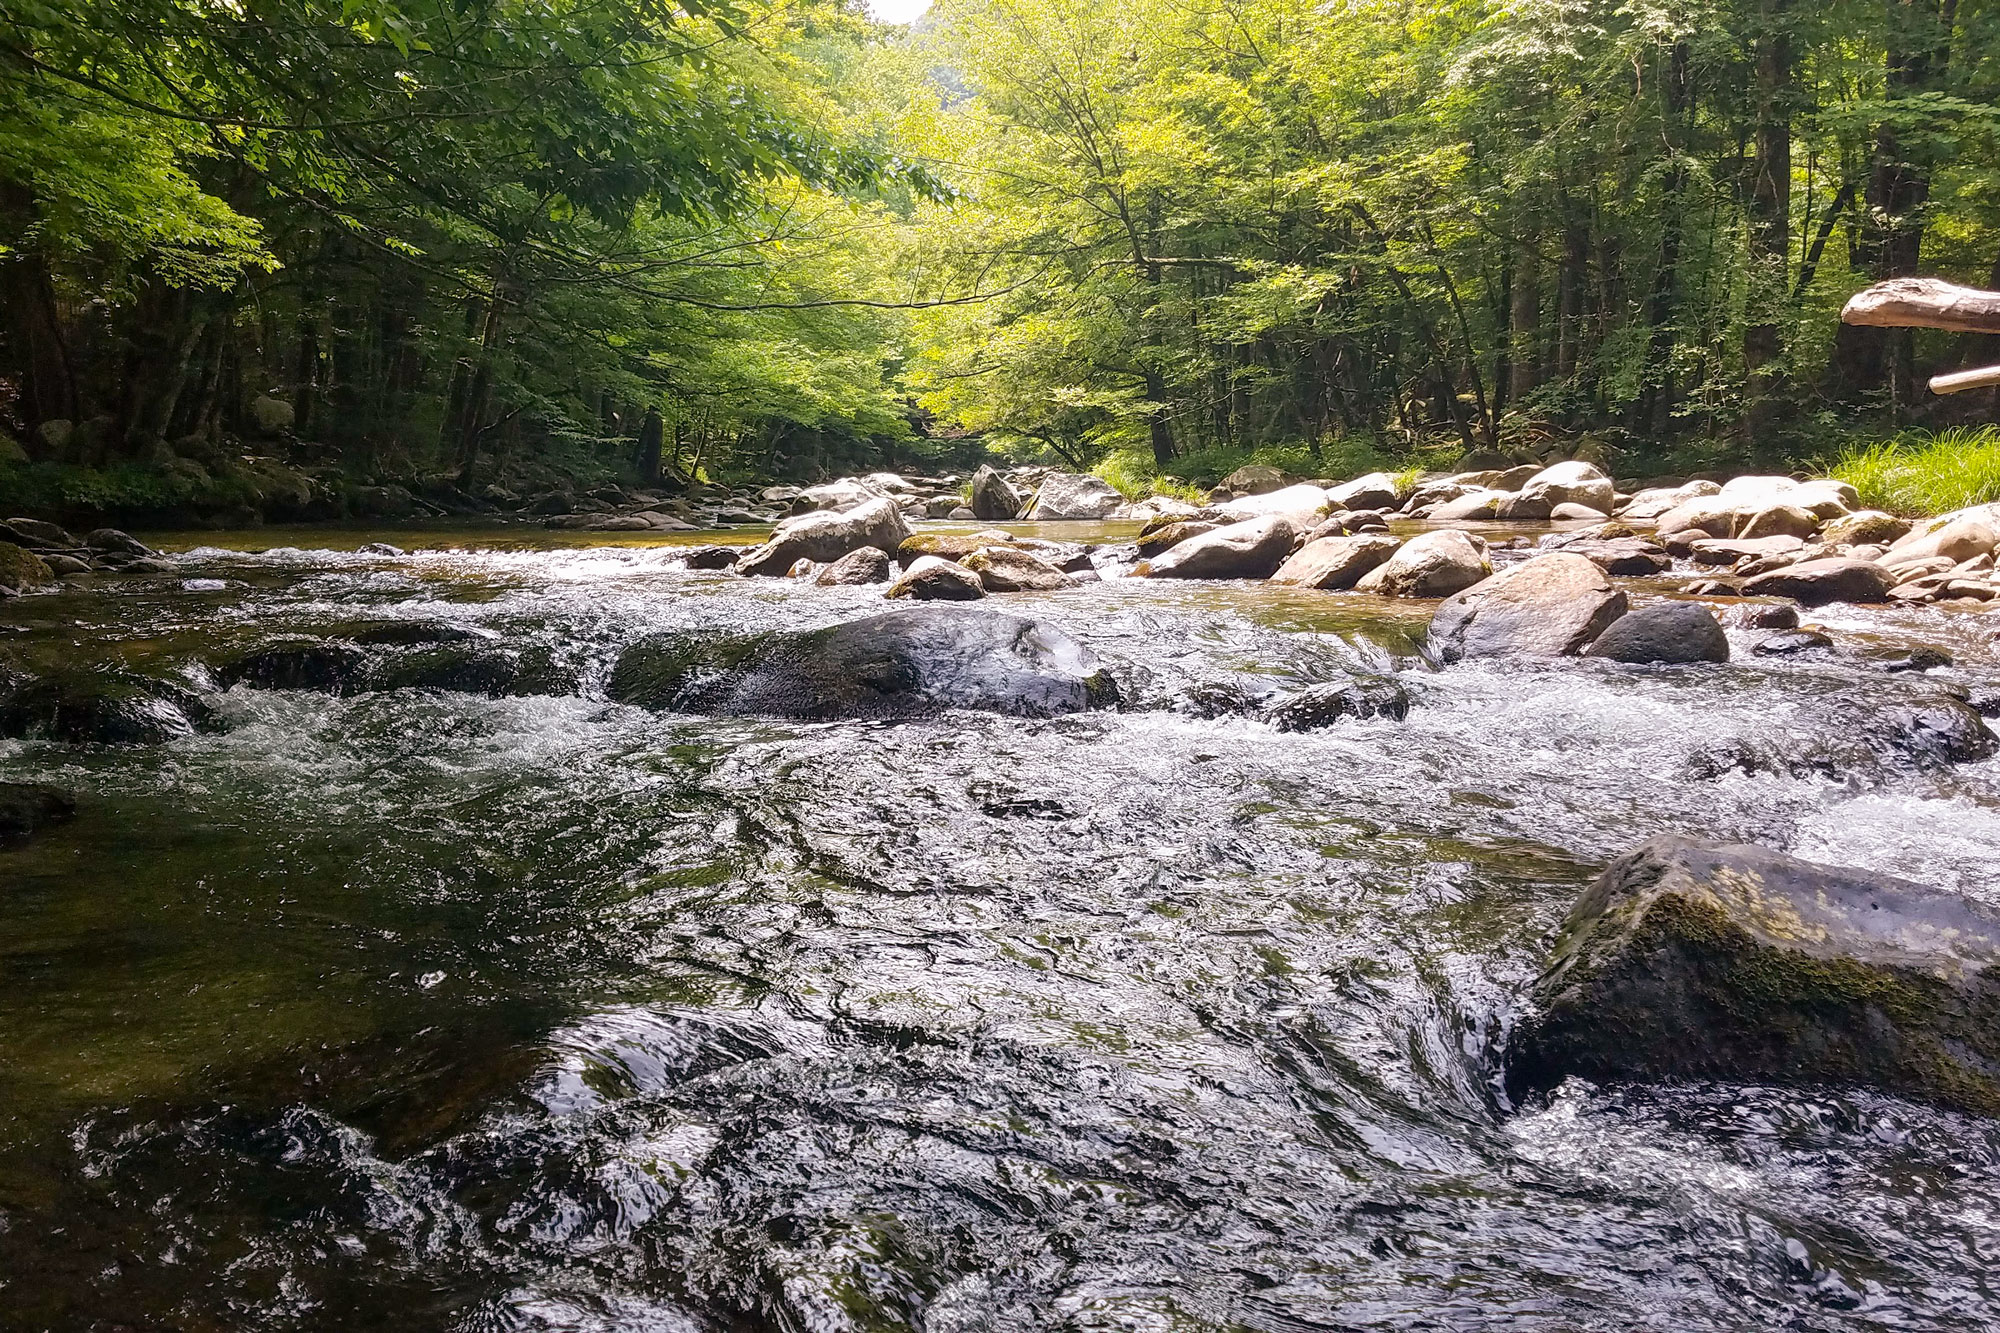 The Middle Prong of Little River